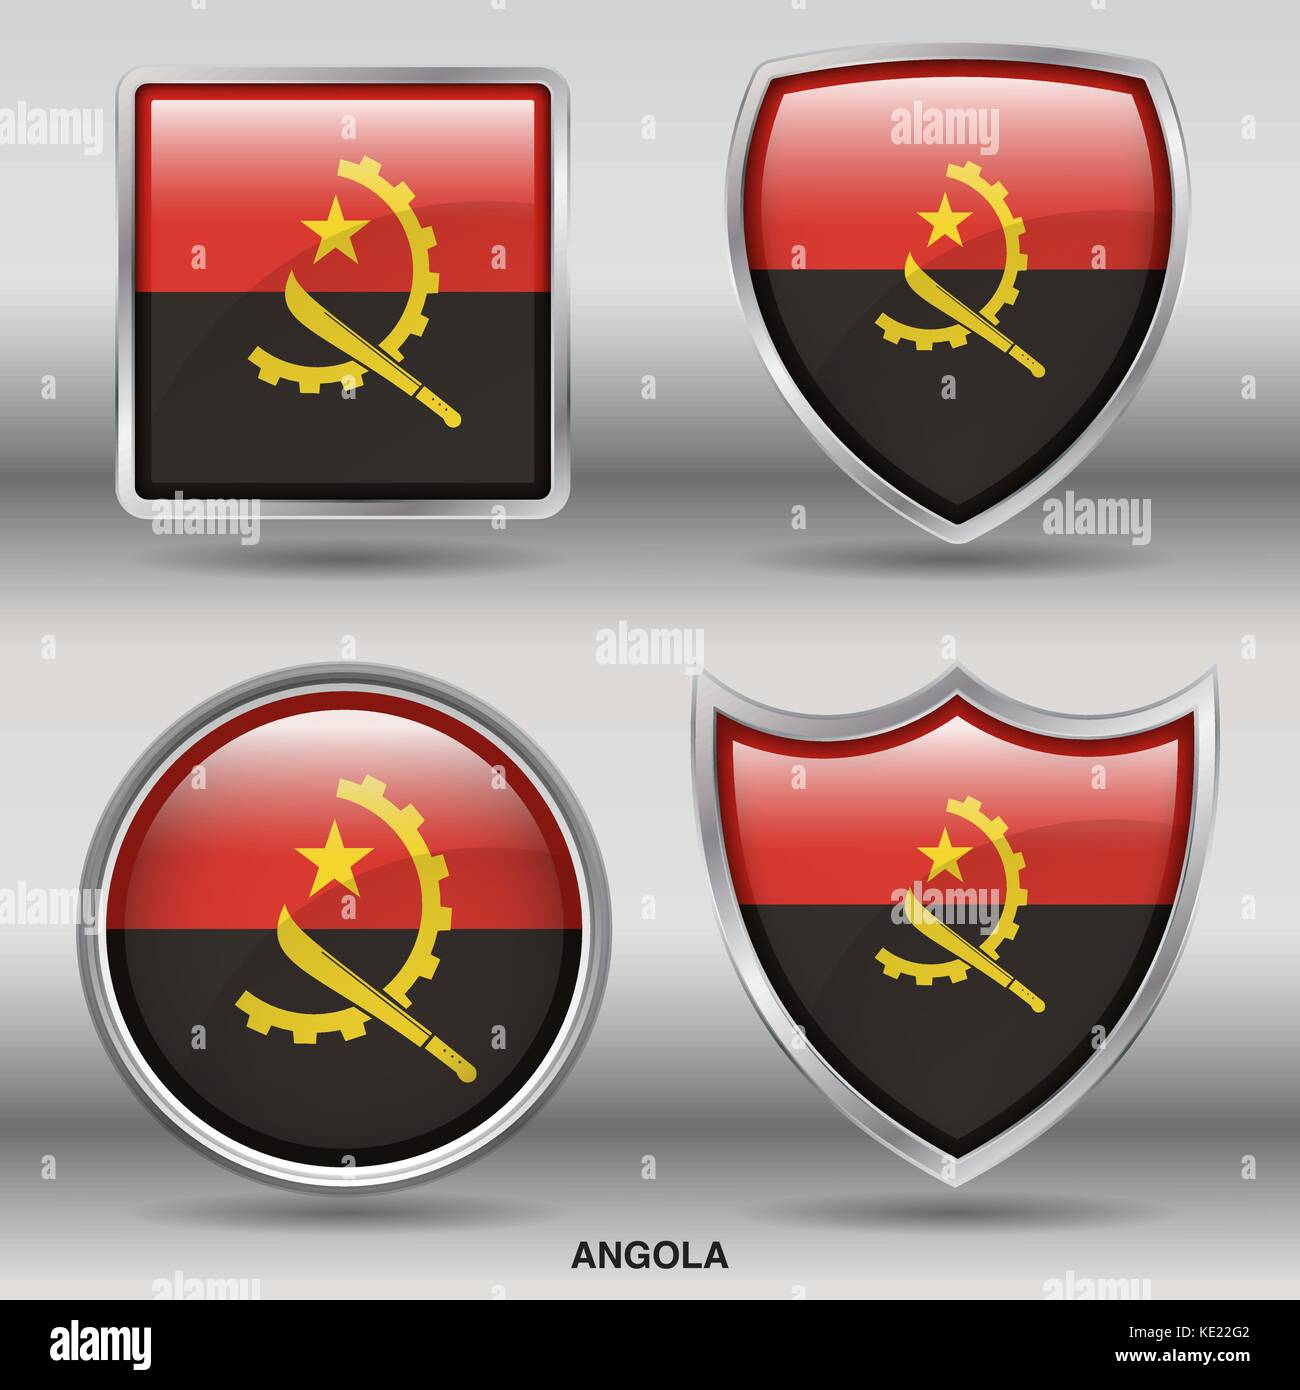 Angola Flag - 4 shapes Flags States Country in the World with clipping path - Stock Vector